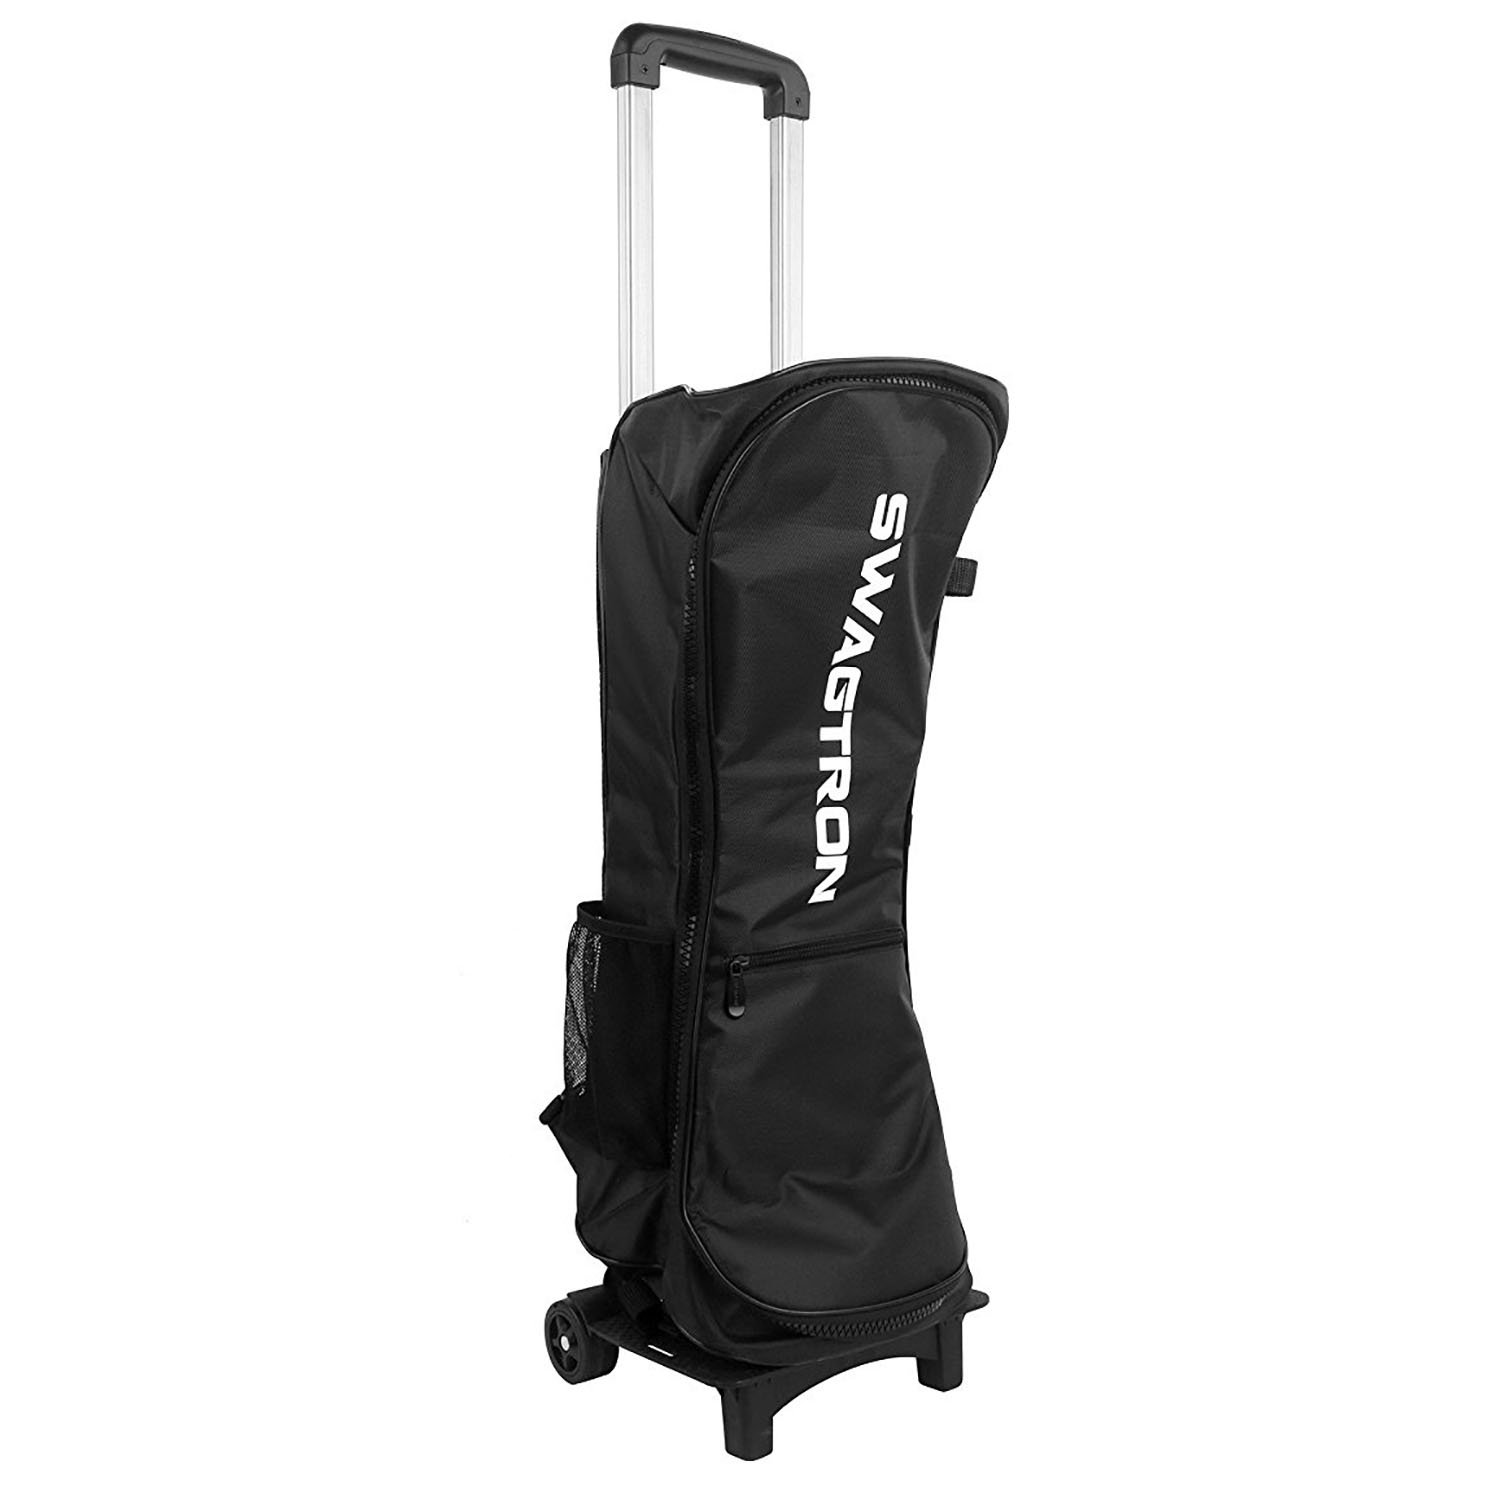 Swagtron Hoverboard Carrying Bag & Case- Fits Swagtron T1 T5 T380 T580 T881 Twist Hoverboards - The Bag for All Your Swag by Swagtron